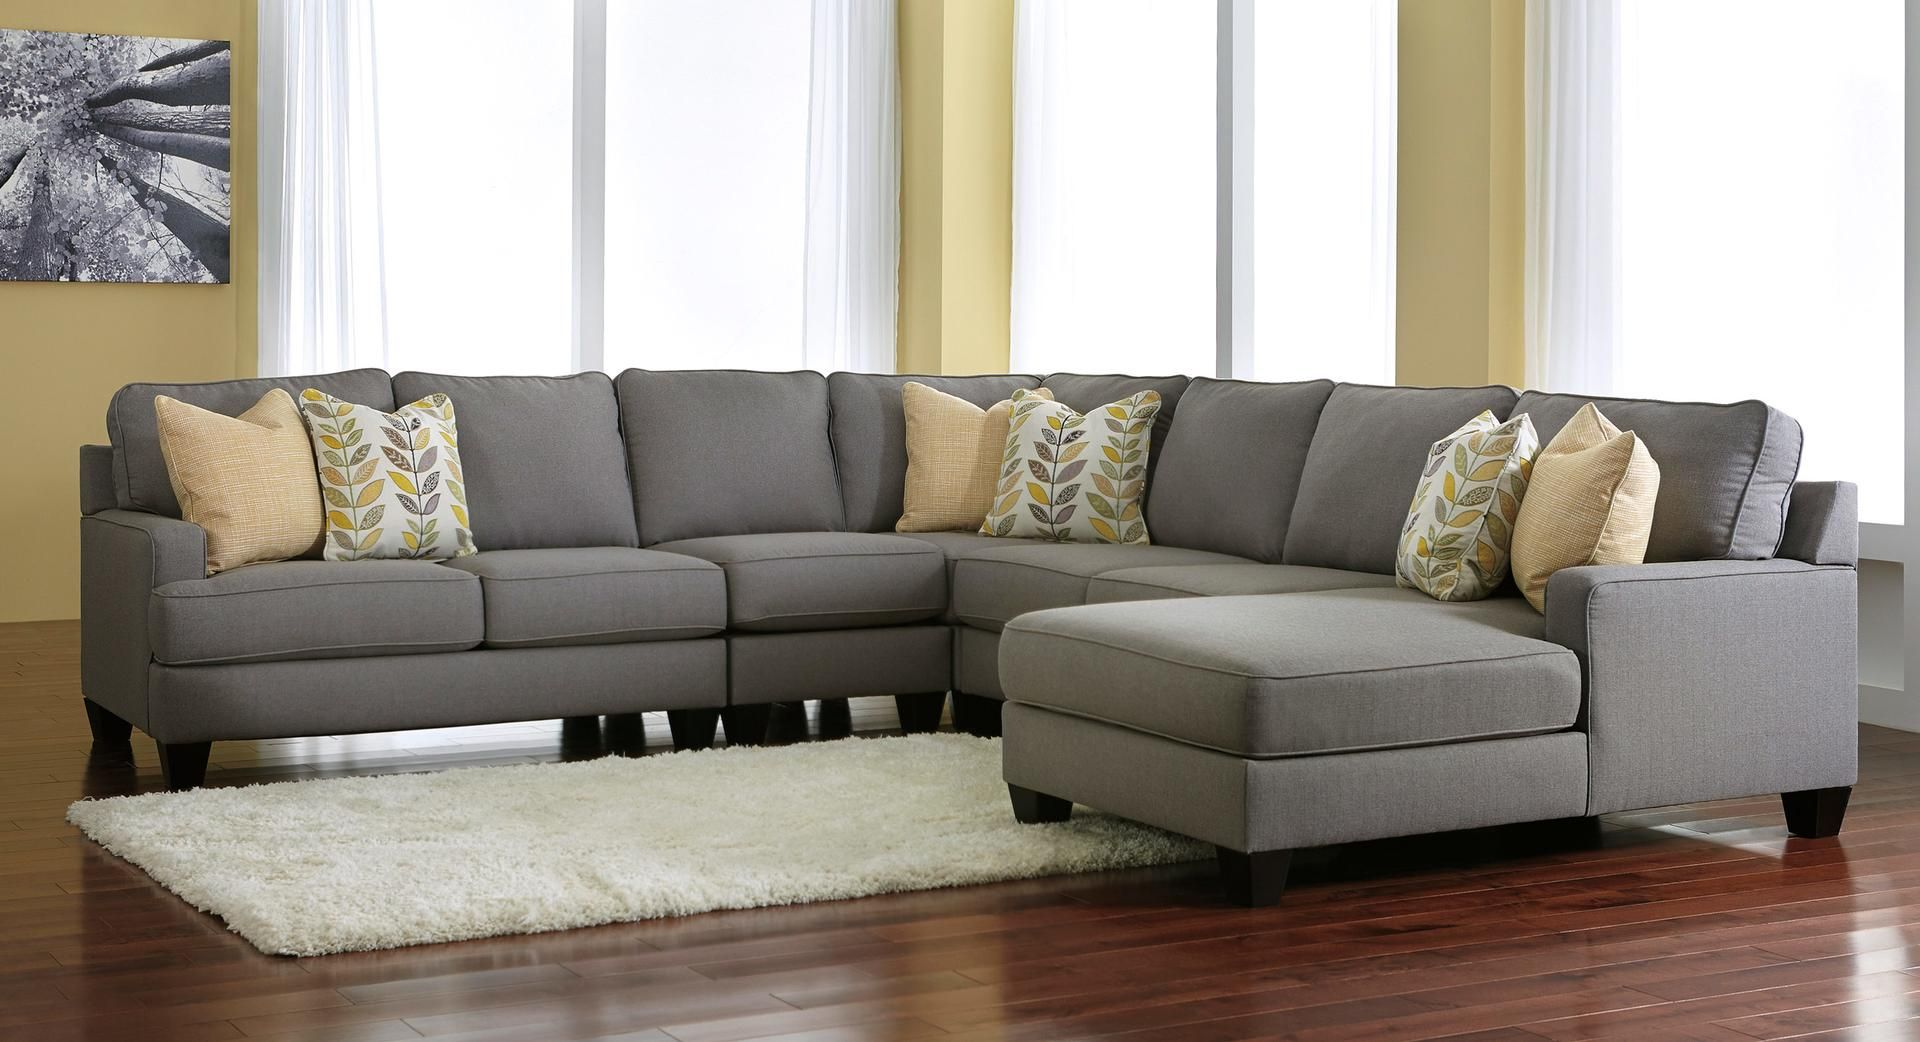 Get Your Chamberly   Alloy 5 Pc. RAF Corner Chaise Sectional At Kerbyu0027s  Furniture, Mesa AZ Furniture Store.